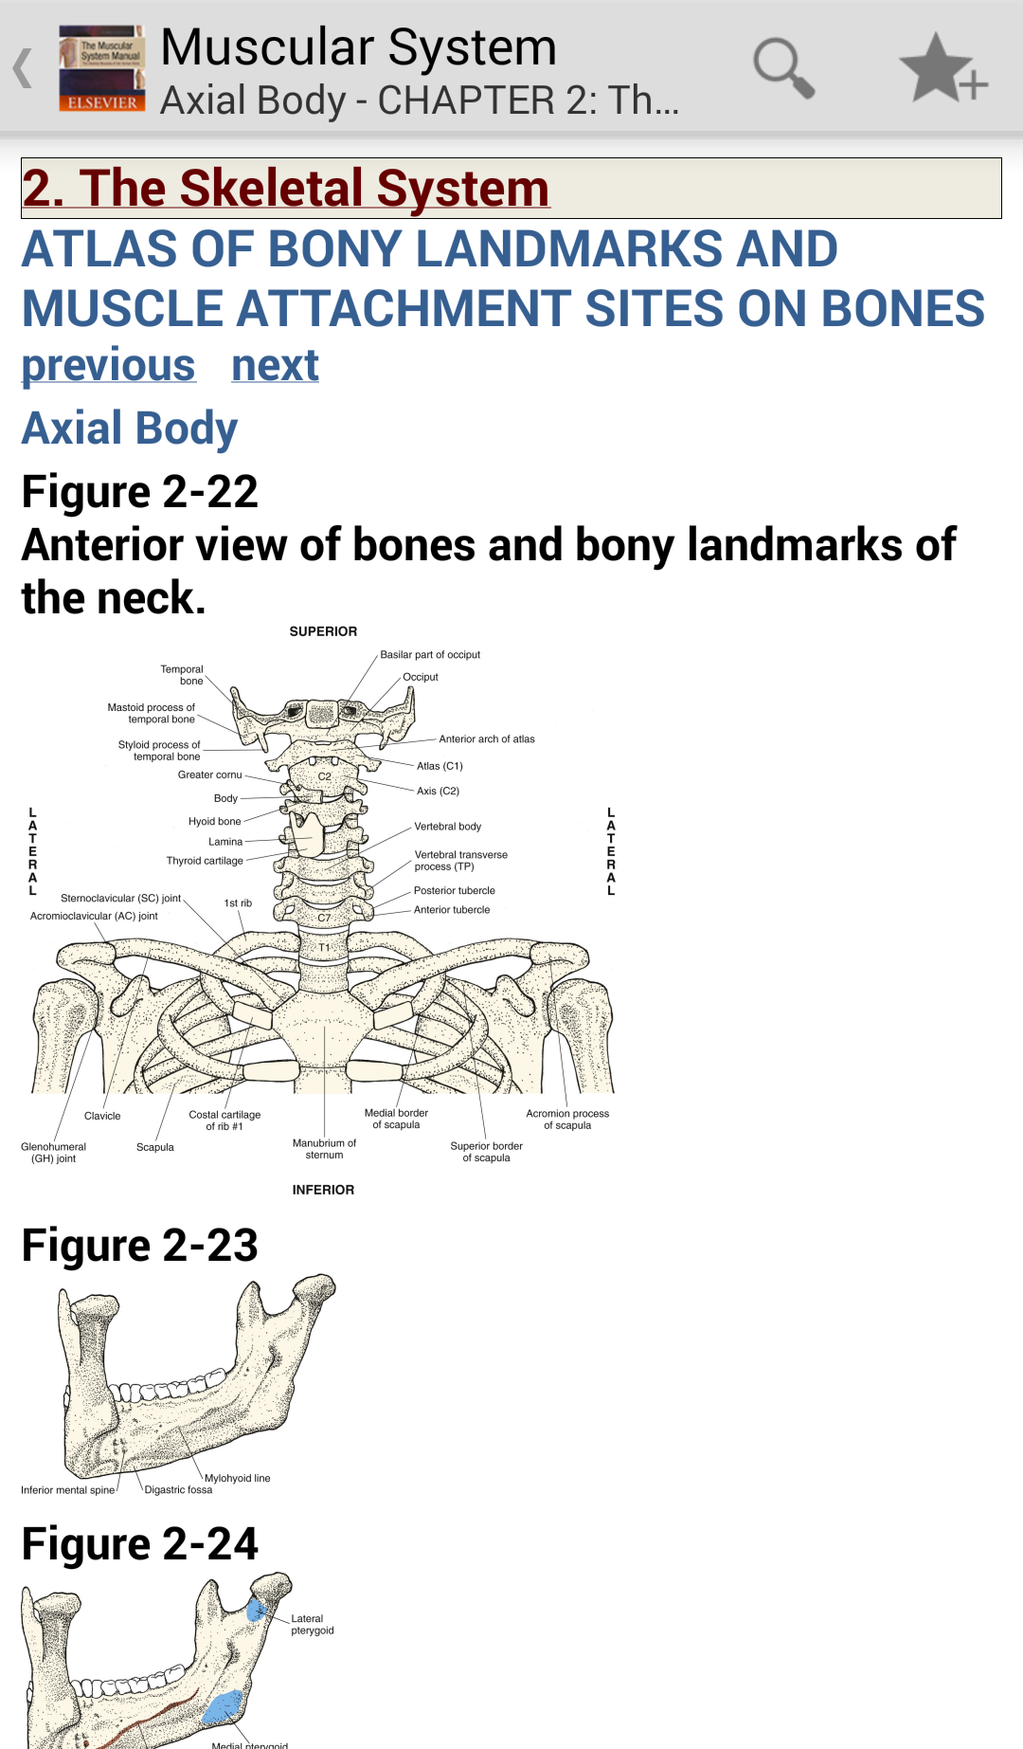 The Muscular System Manual: The Skeletal Muscles of the Human Body Screenshot 2